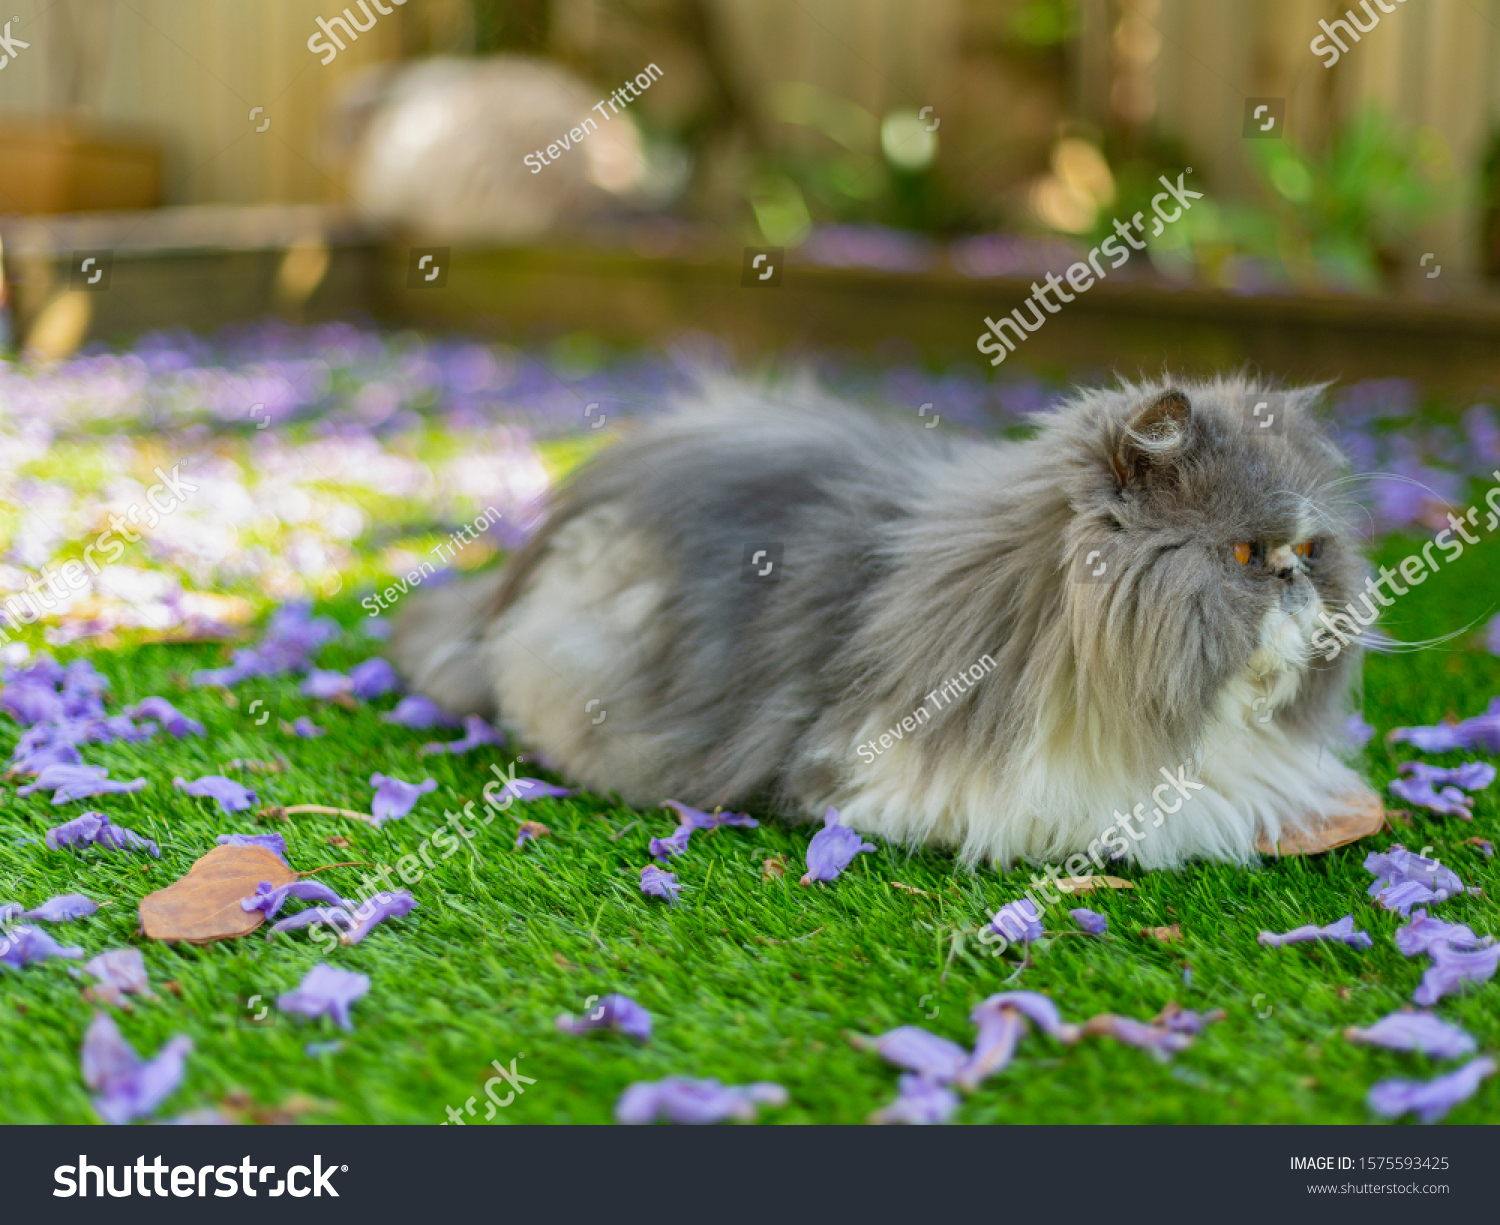 Cute grey and white Persian cat lying on green grass in a garden space with fallen purple flowering around